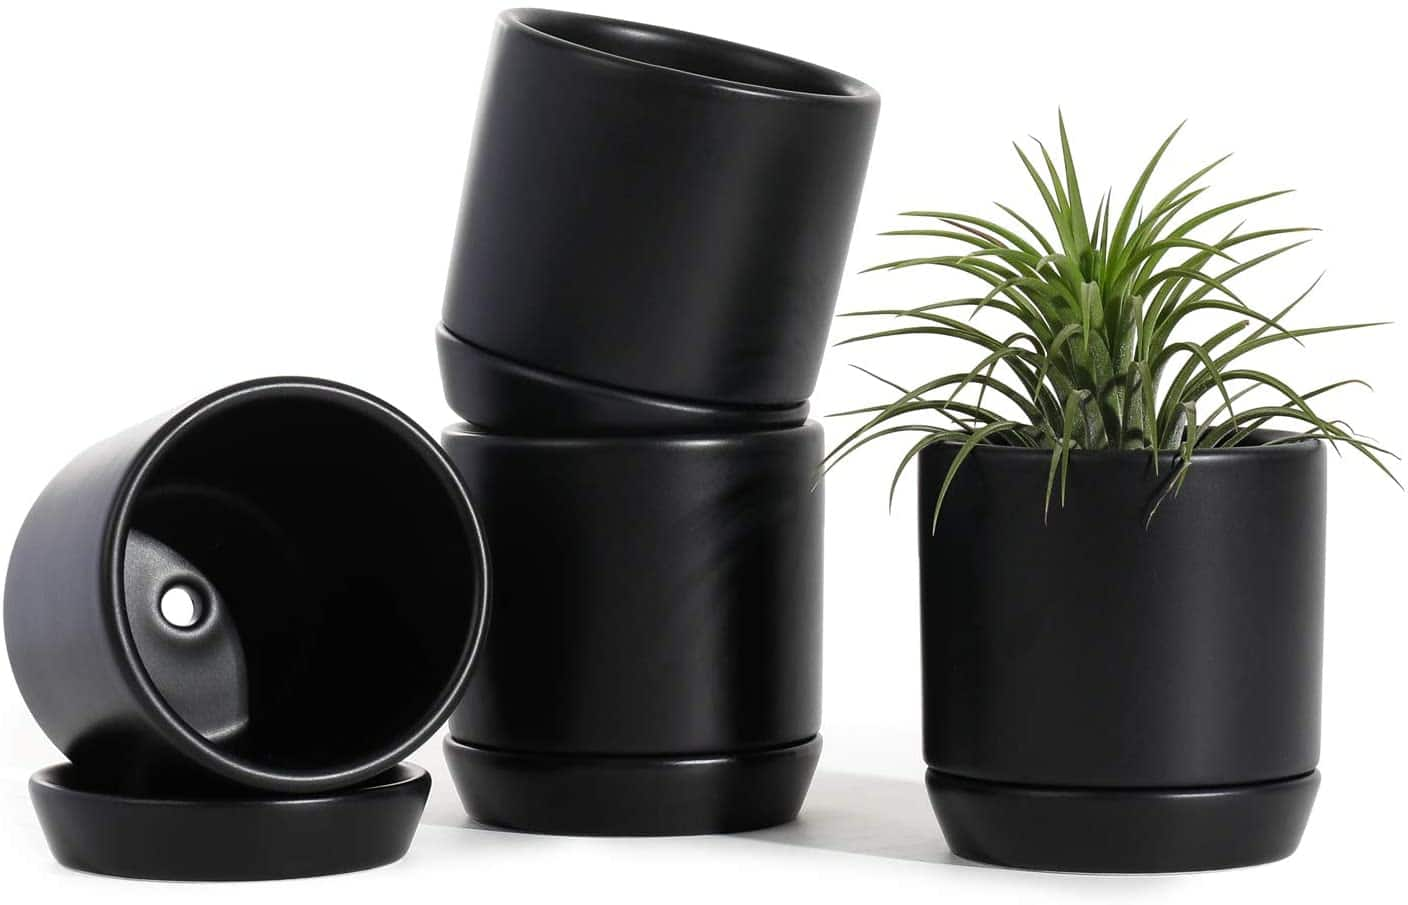 POTEY 3.1 Inch Succulent Planters Pots(6 colors) $8.49 to $16.24+ + Free Shipping w/Prime